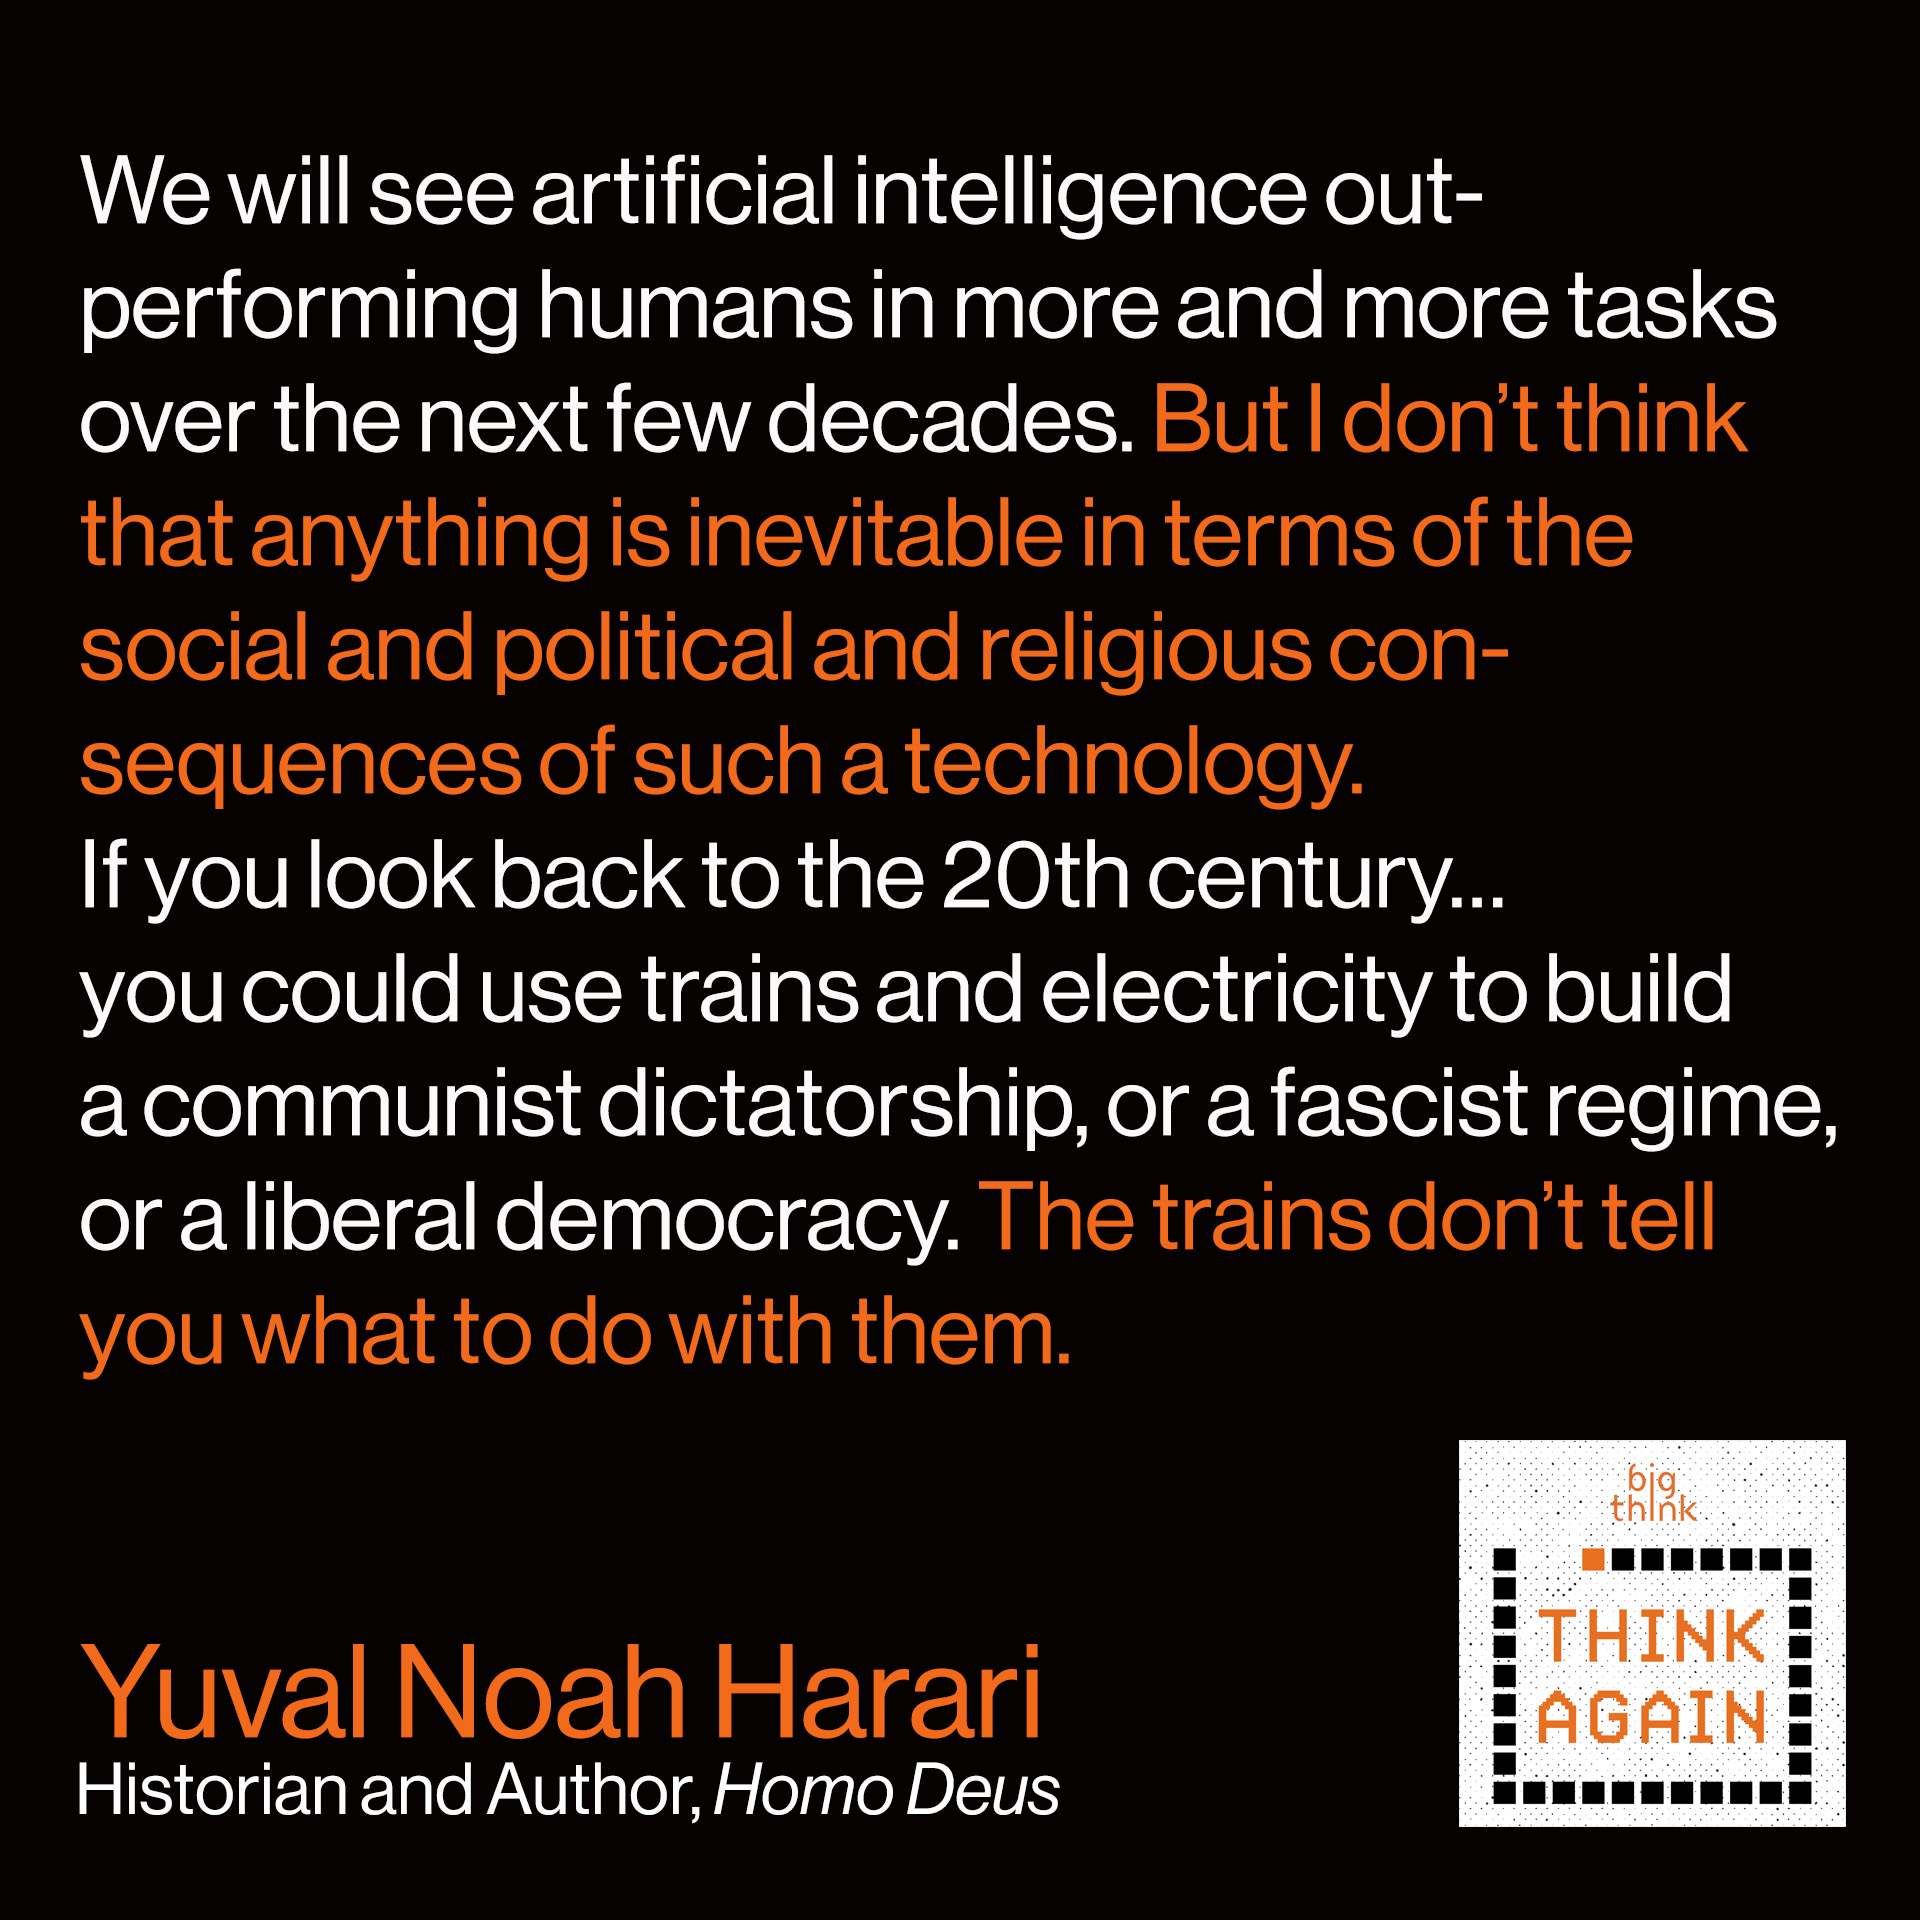 We will see artificial intelligence outperforming humans in more and more tasks over the next few decades. But I don't think that anything is inevitable in terms of the social and political and religious consequences of such a technology. If you look back to the 20th century…you could use trains and electricity to build a communist dictatorship, or a fascist regime, or a liberal democracy. The trains don't tell you what to do with them.